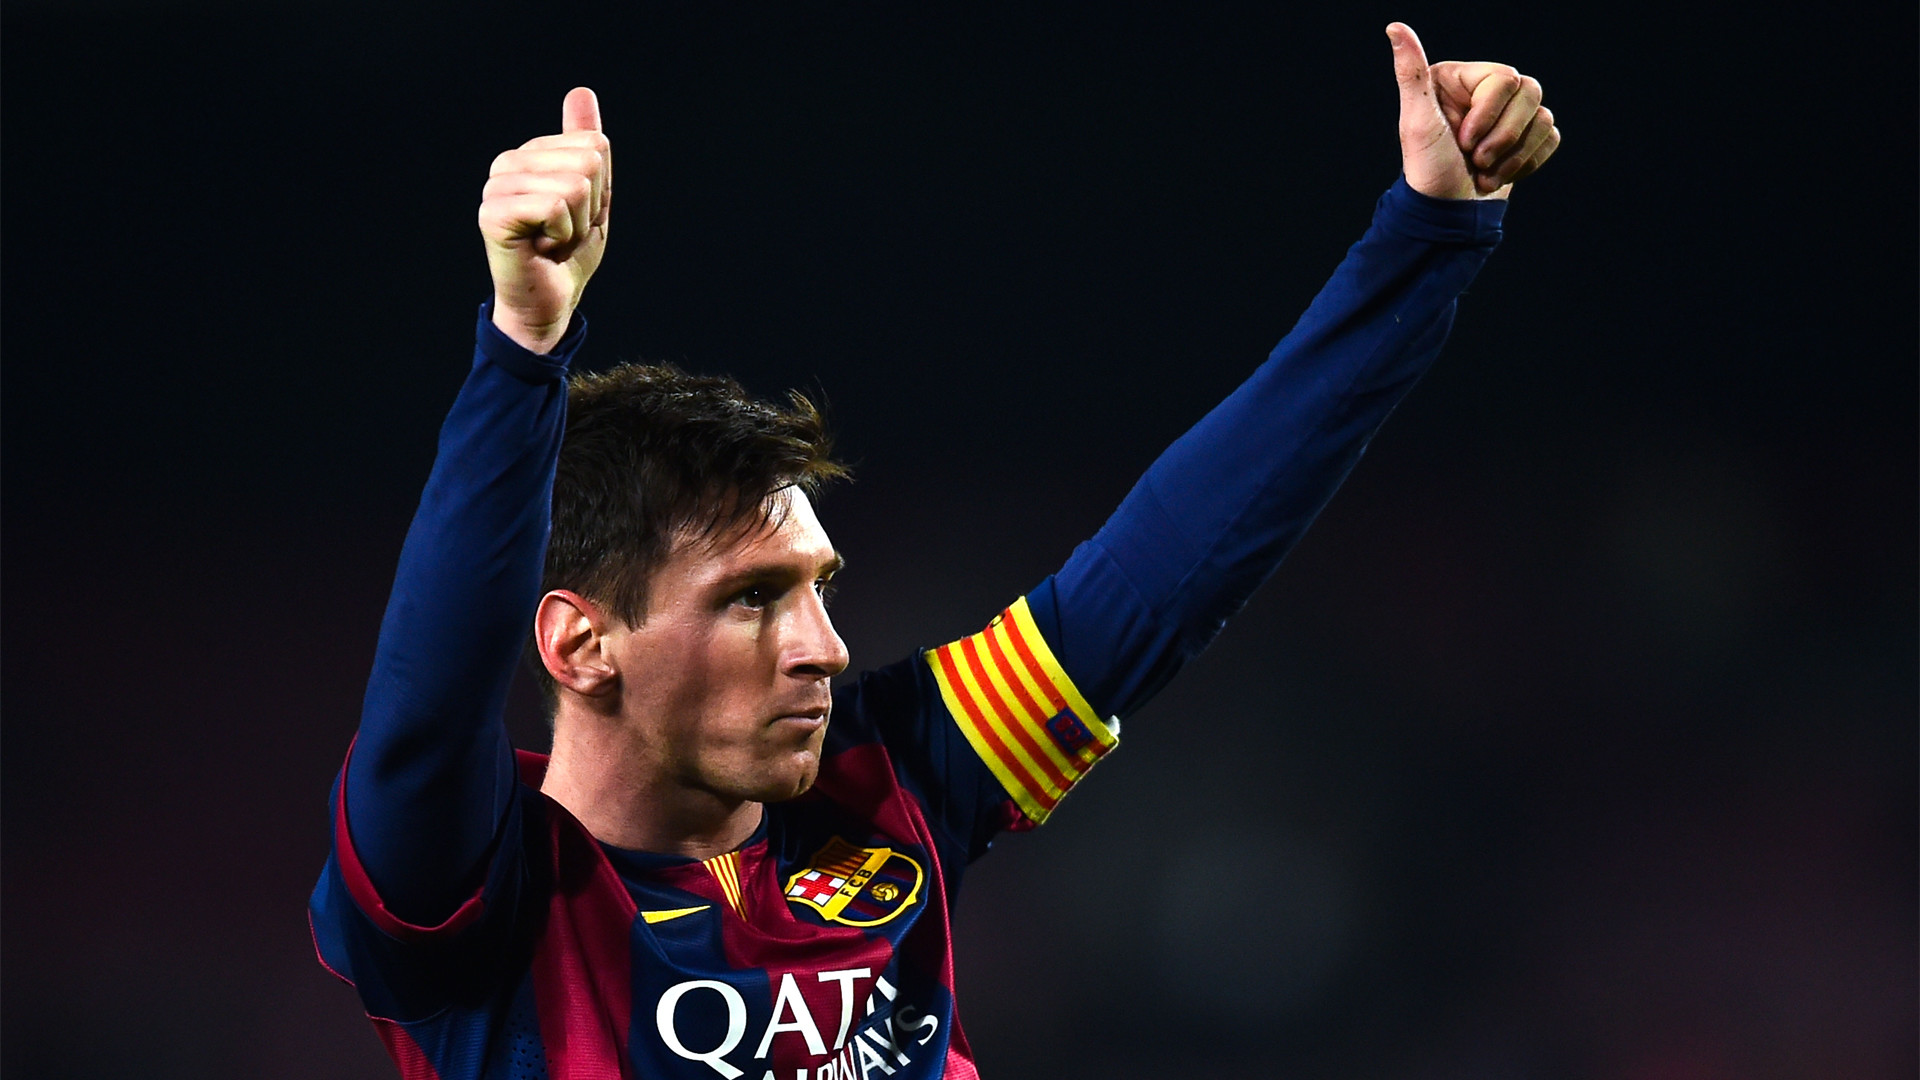 Lionel messi wallpaper hd 78 images 1920x1080 hd lionel messi wallpapers voltagebd Gallery